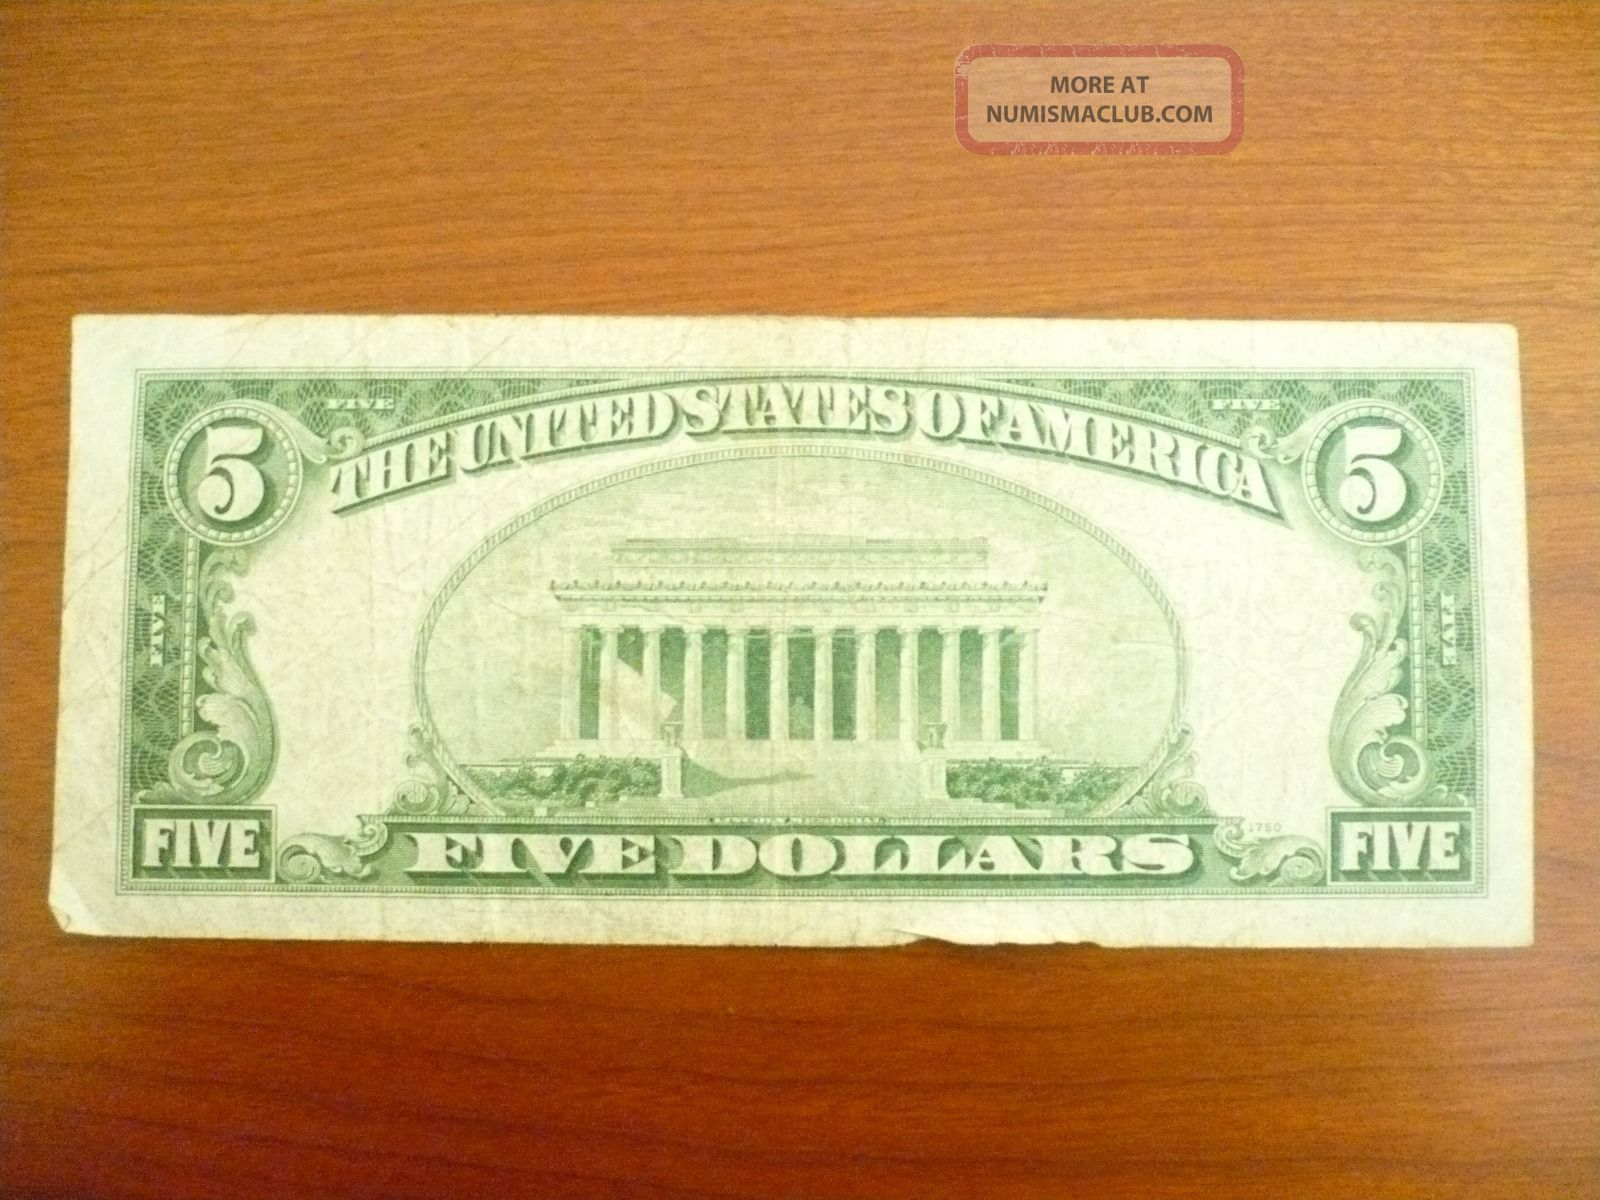 Major Designs of United States Currency